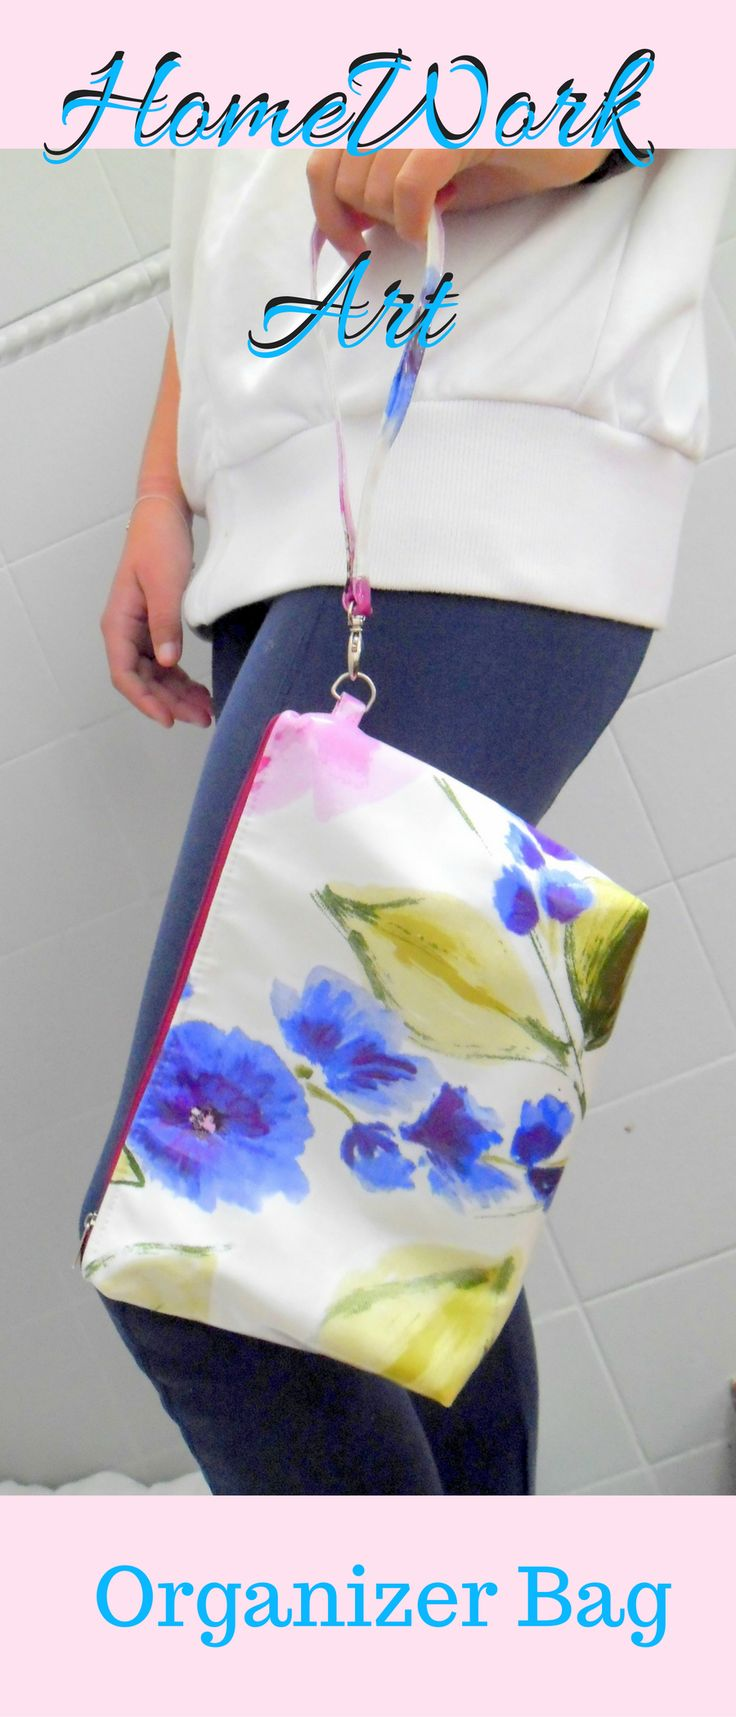 Organizer Bag oil cloth fabric, perfect gift for her